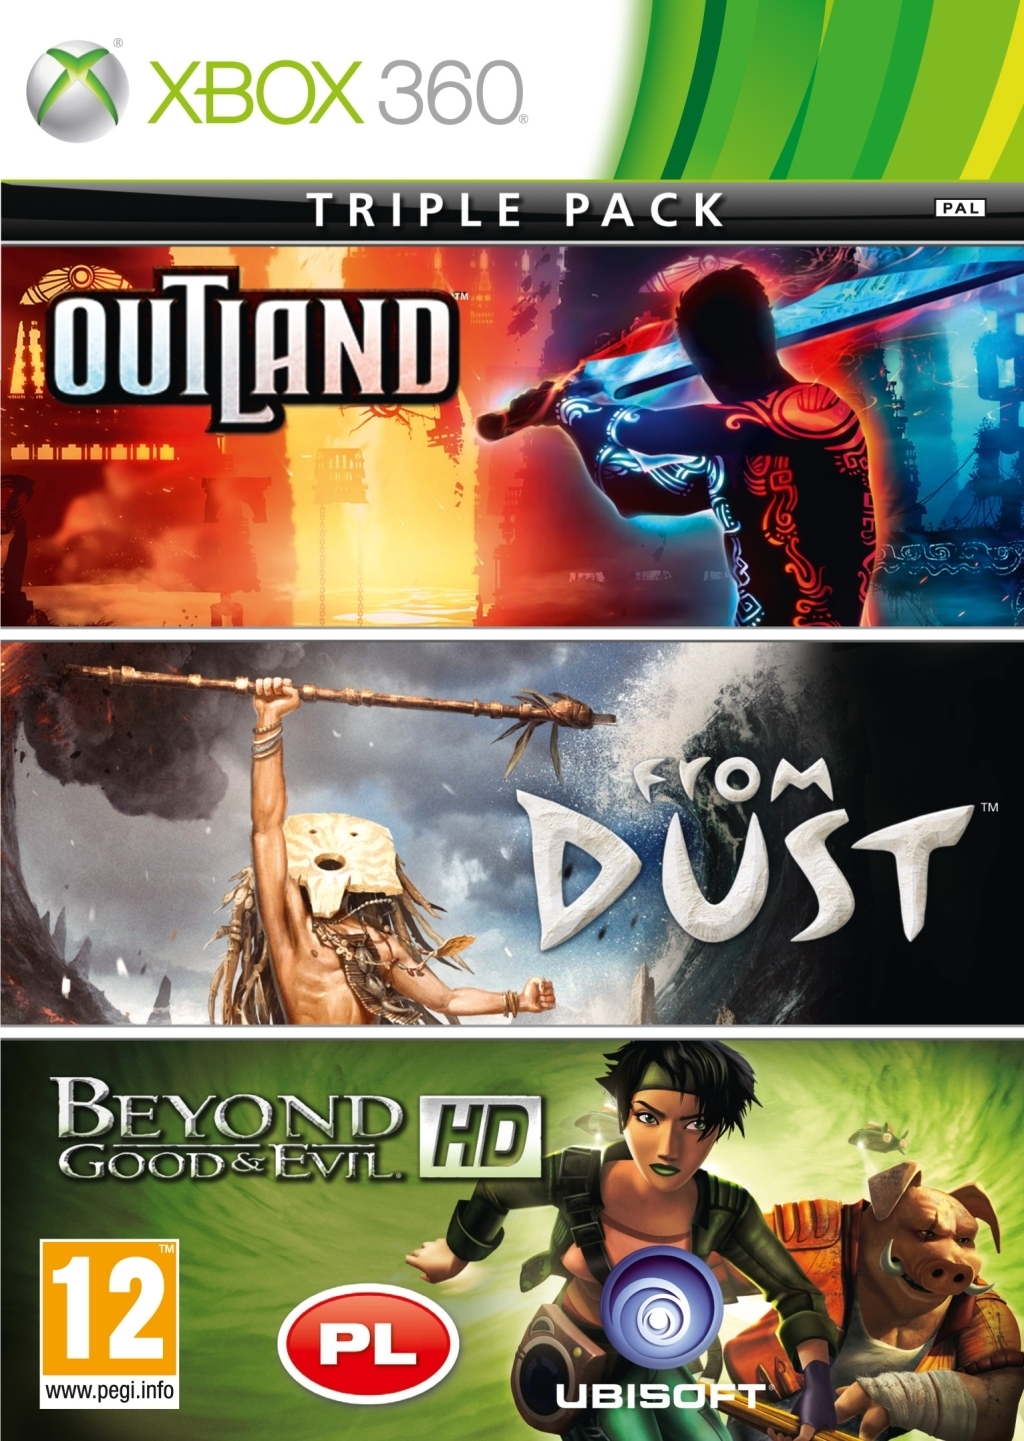 Beyond Good and Evil + From Dust + Outland PL (Xbox 360)